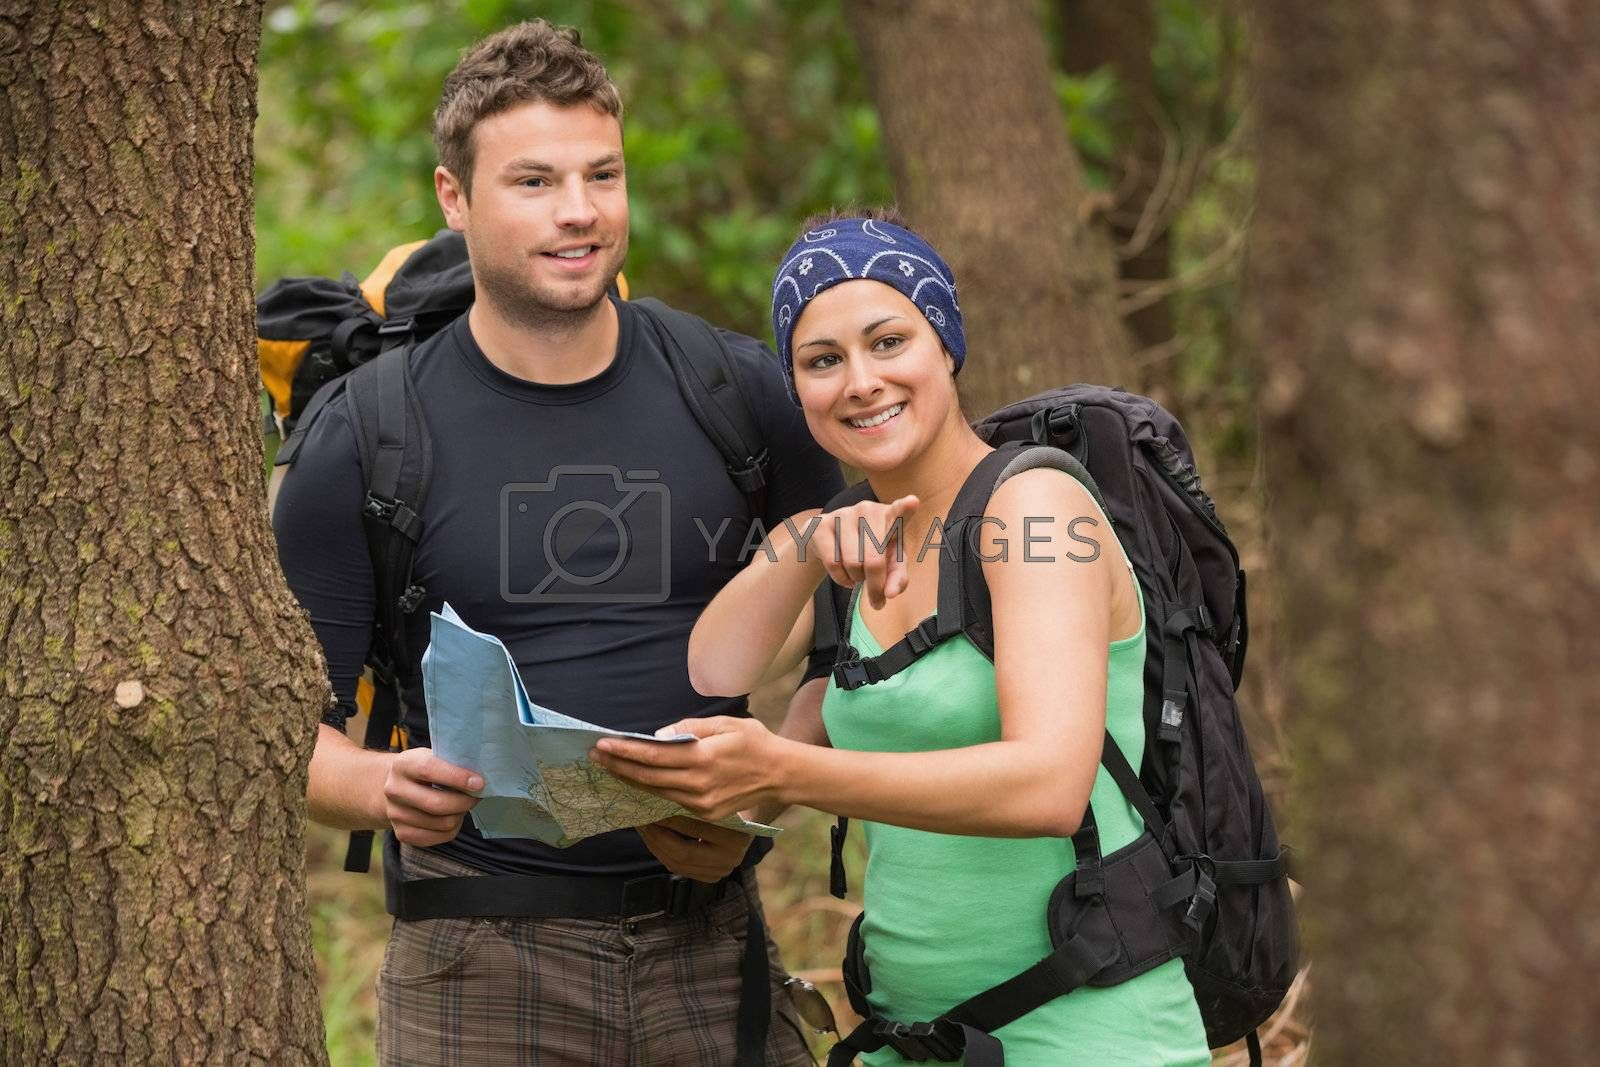 Fit couple reading map in a forest with woman pointing by Wavebreakmedia